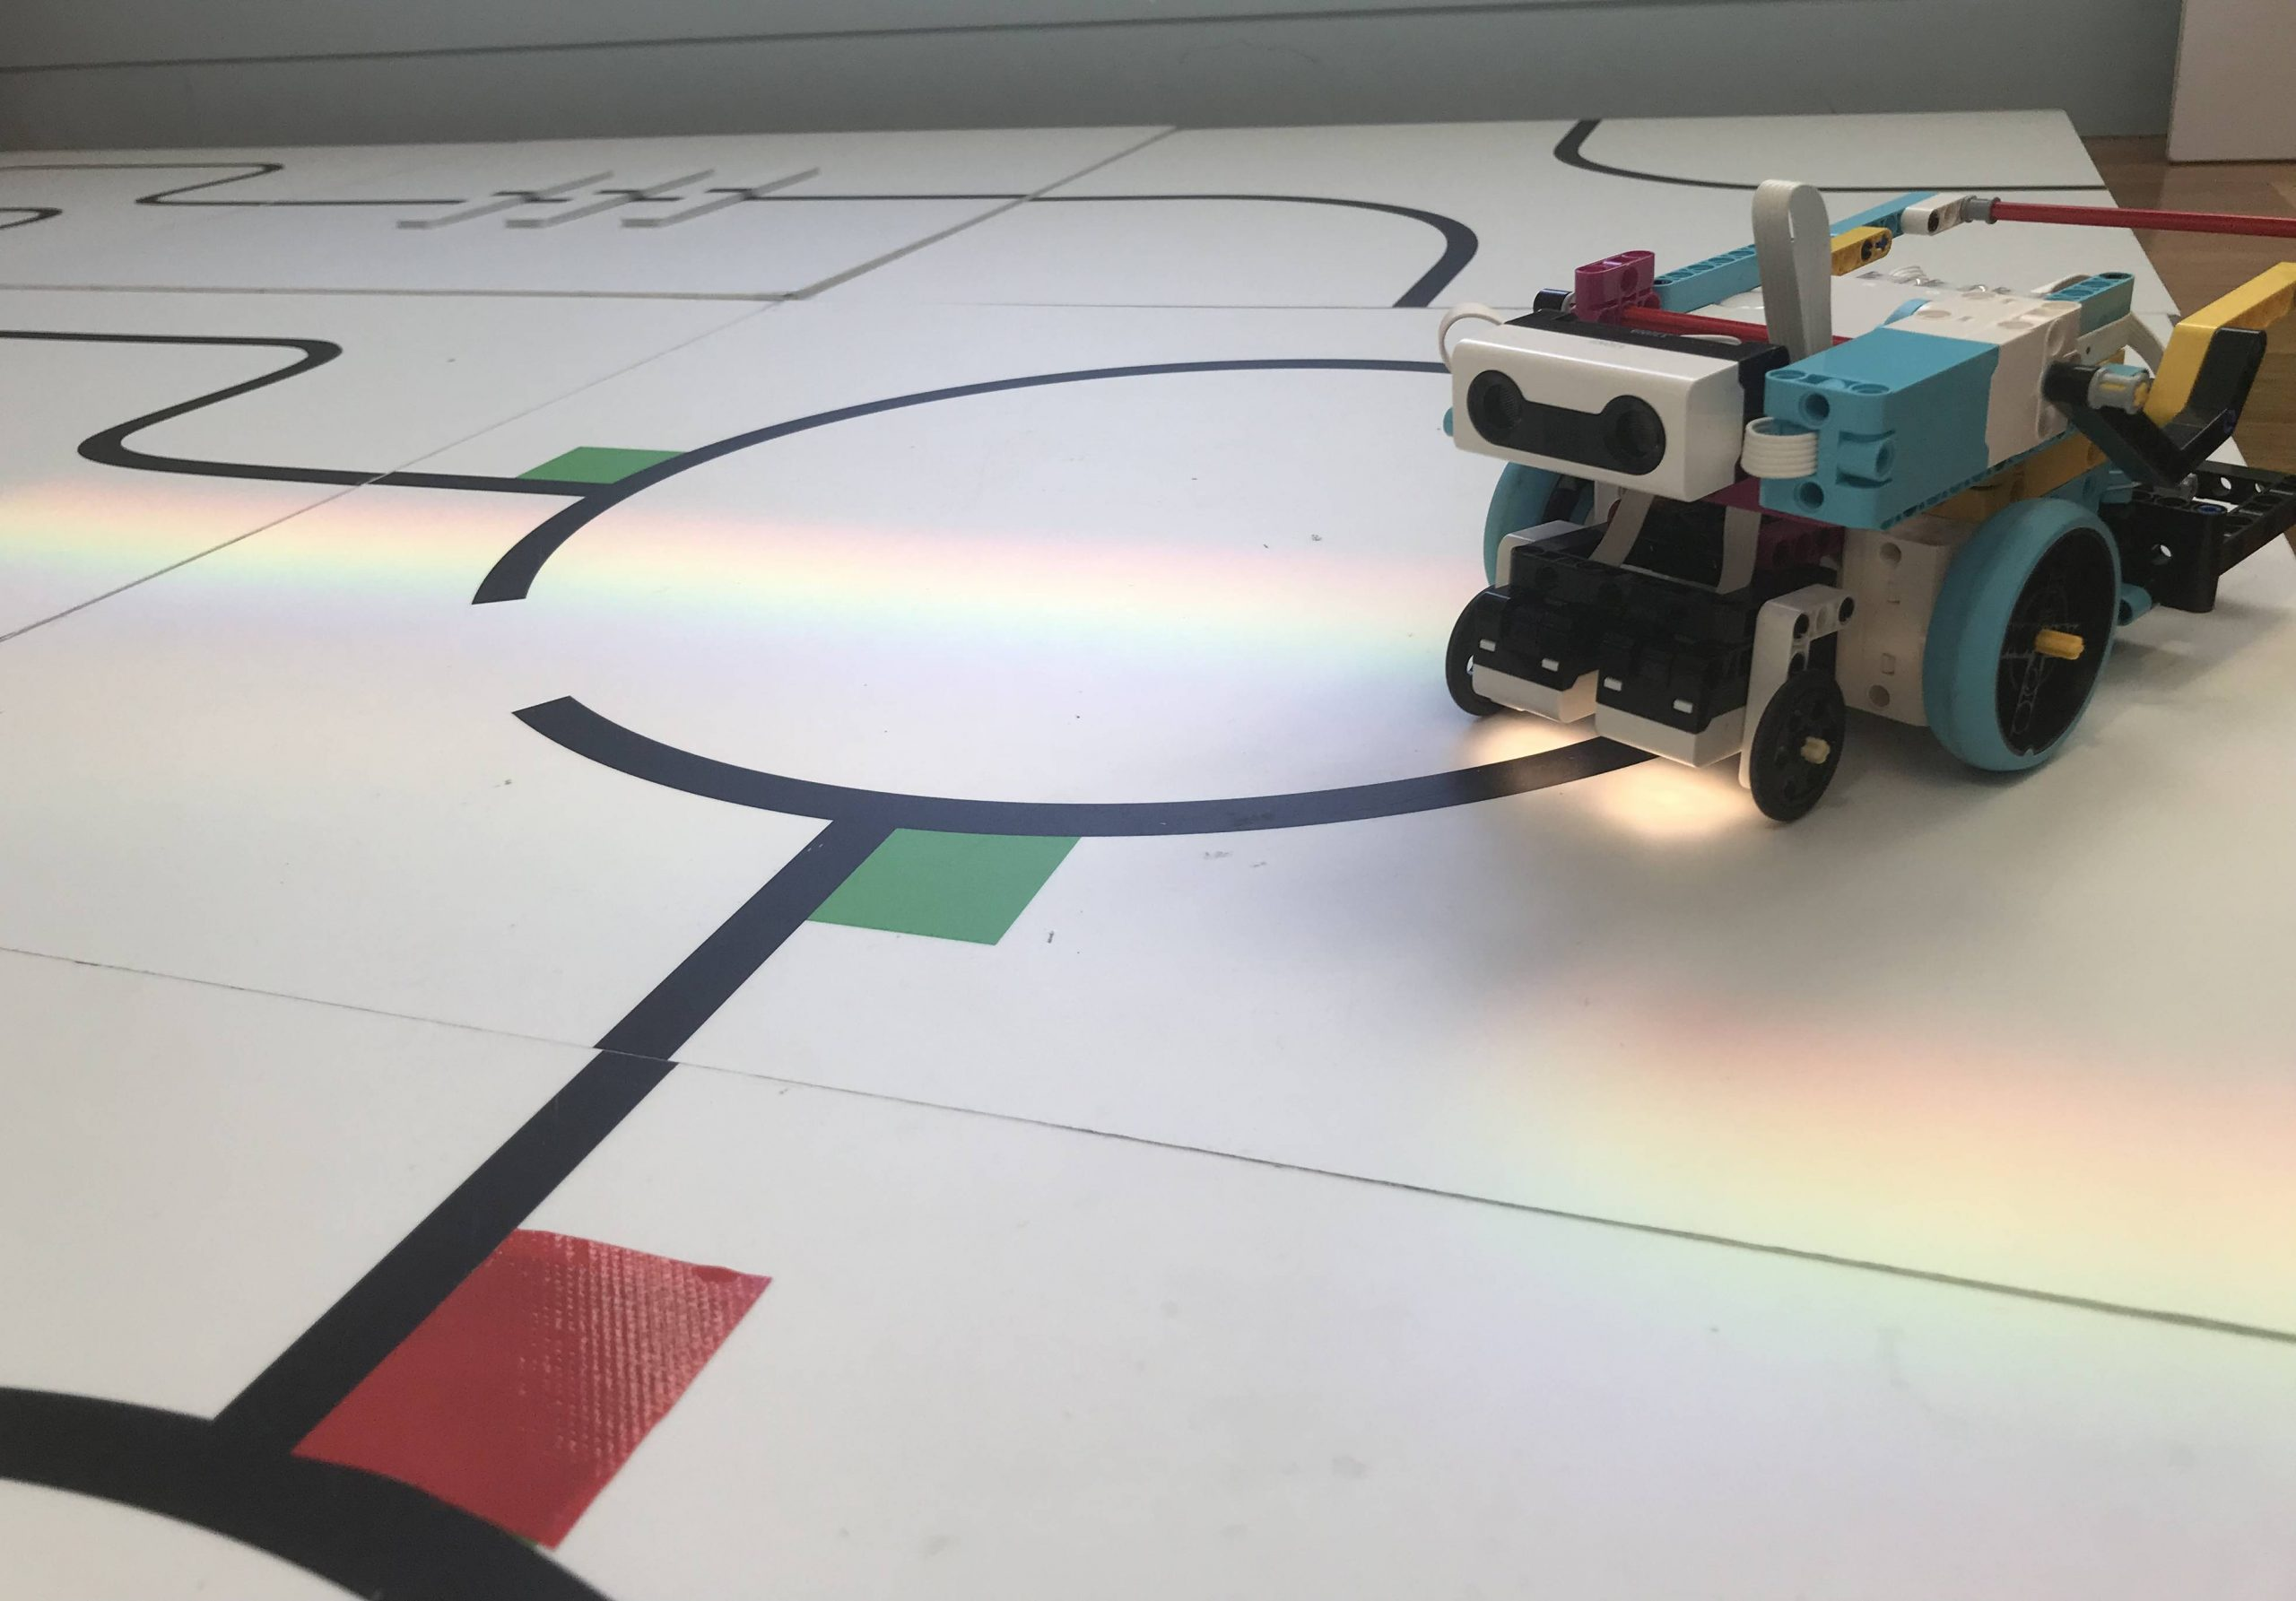 Spike Prime rescue robot